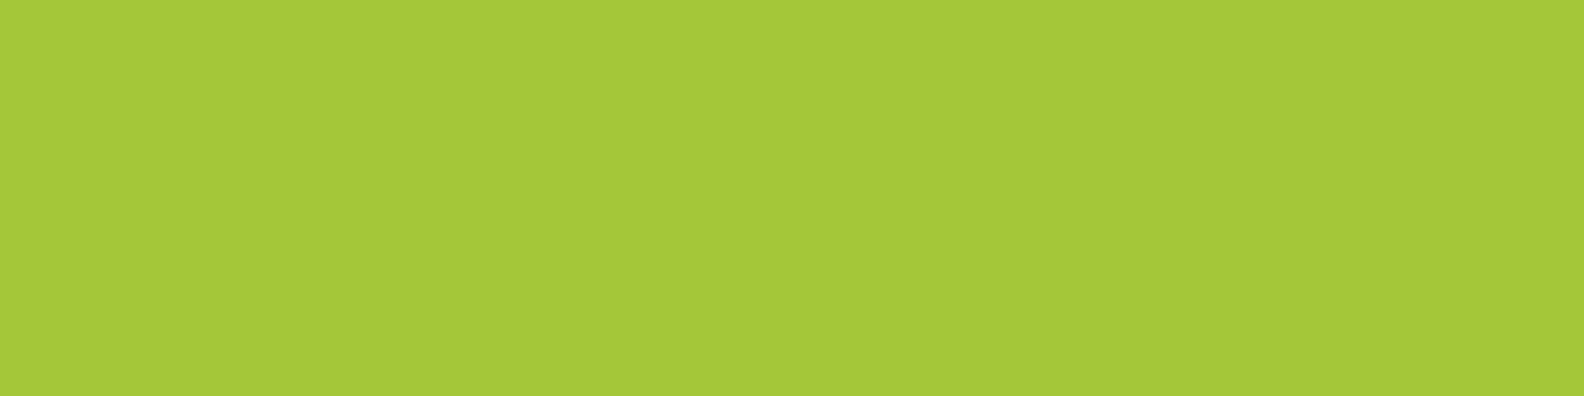 1584x396 Android Green Solid Color Background